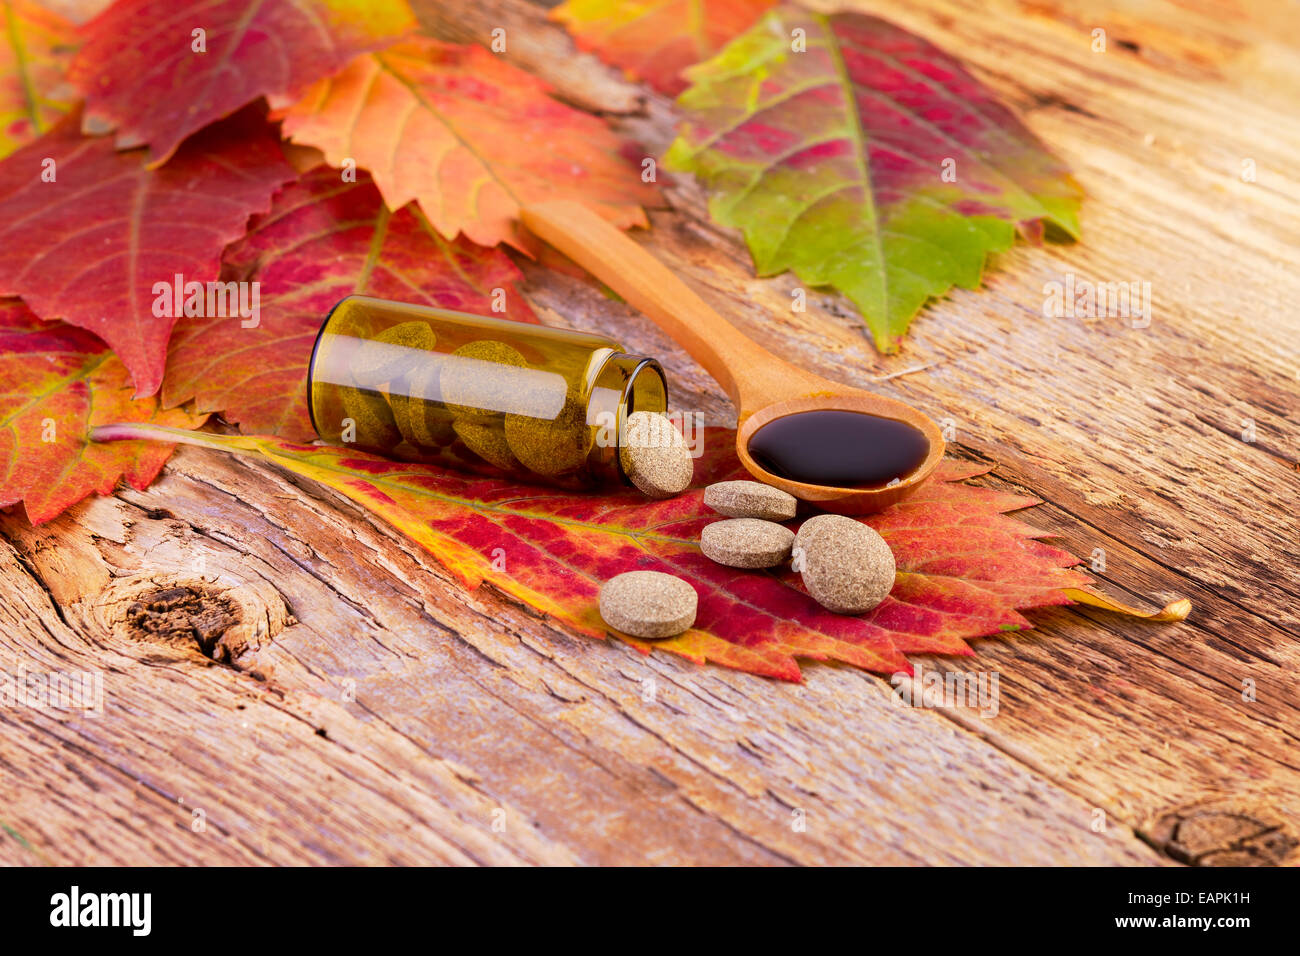 medicine bottle, pills on leaf and syrup in wooden spoon on wooden background - Stock Image